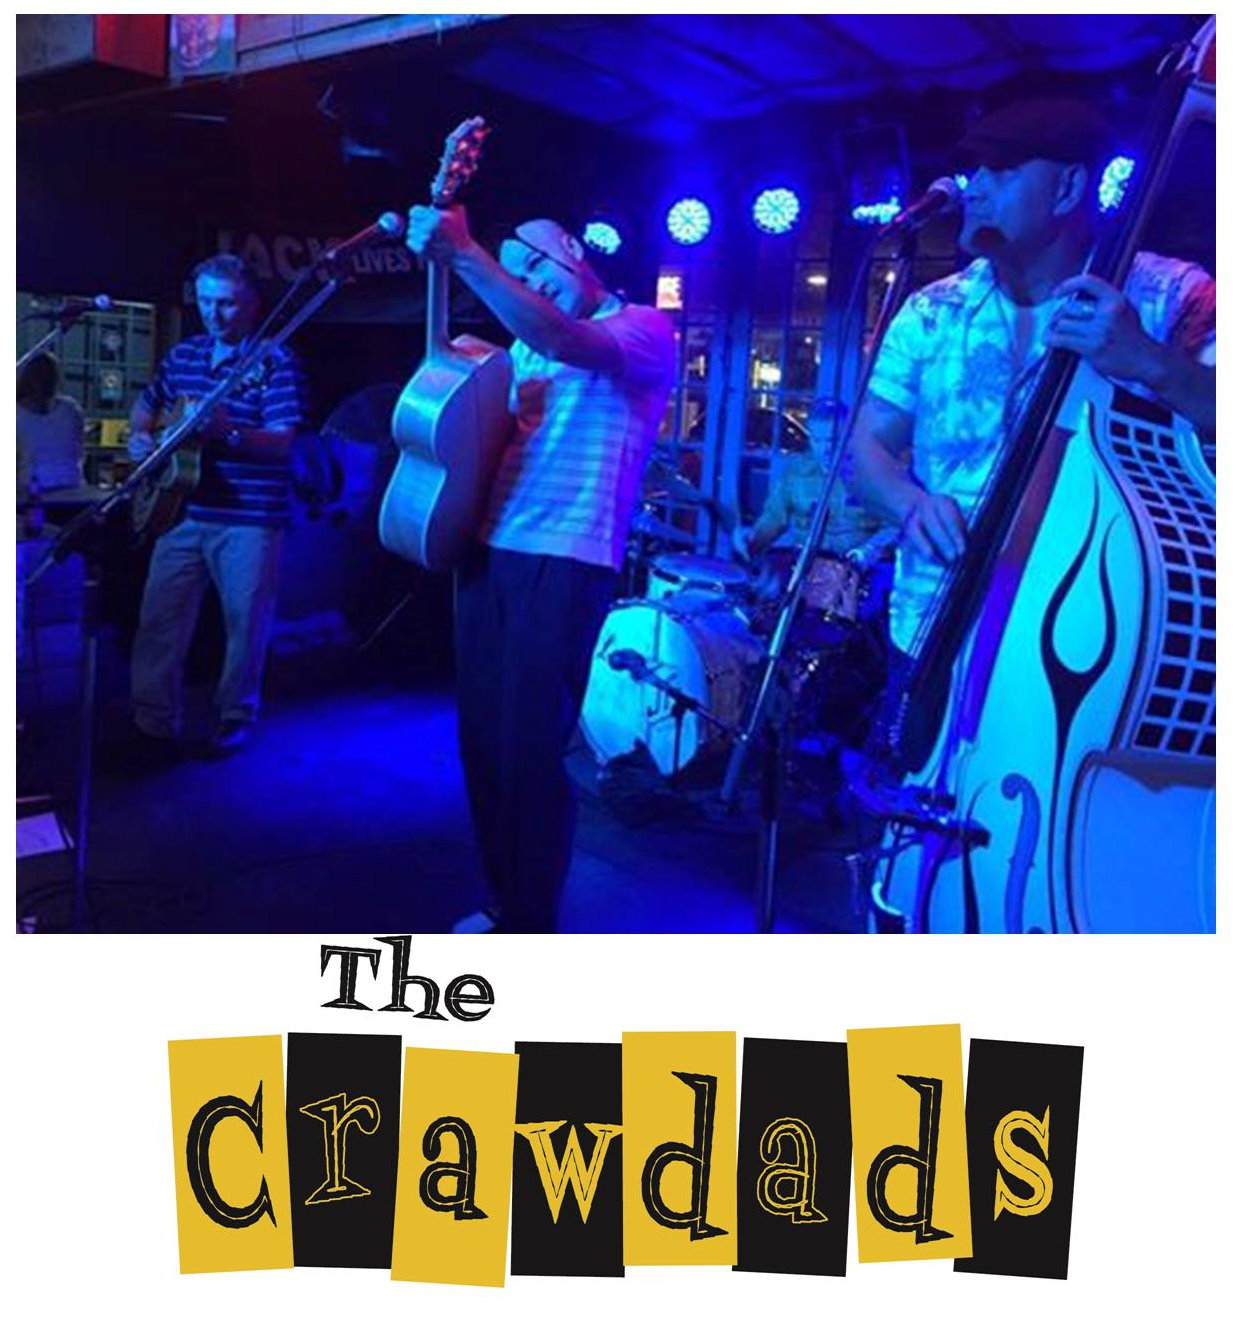 The Crawdads + Milhouse